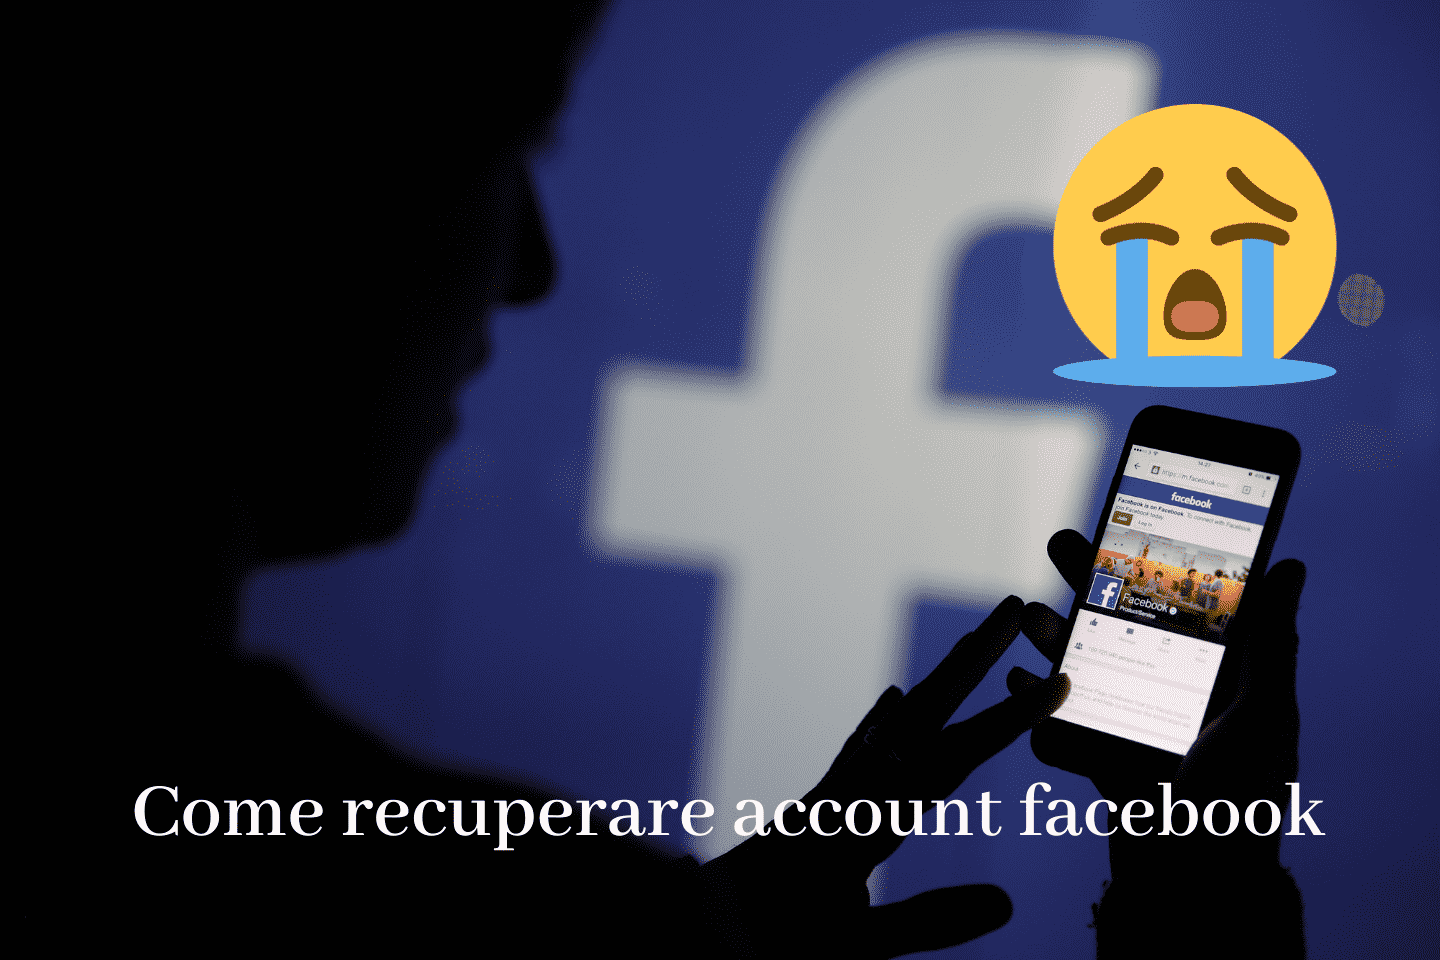 Come recuperare account facebook